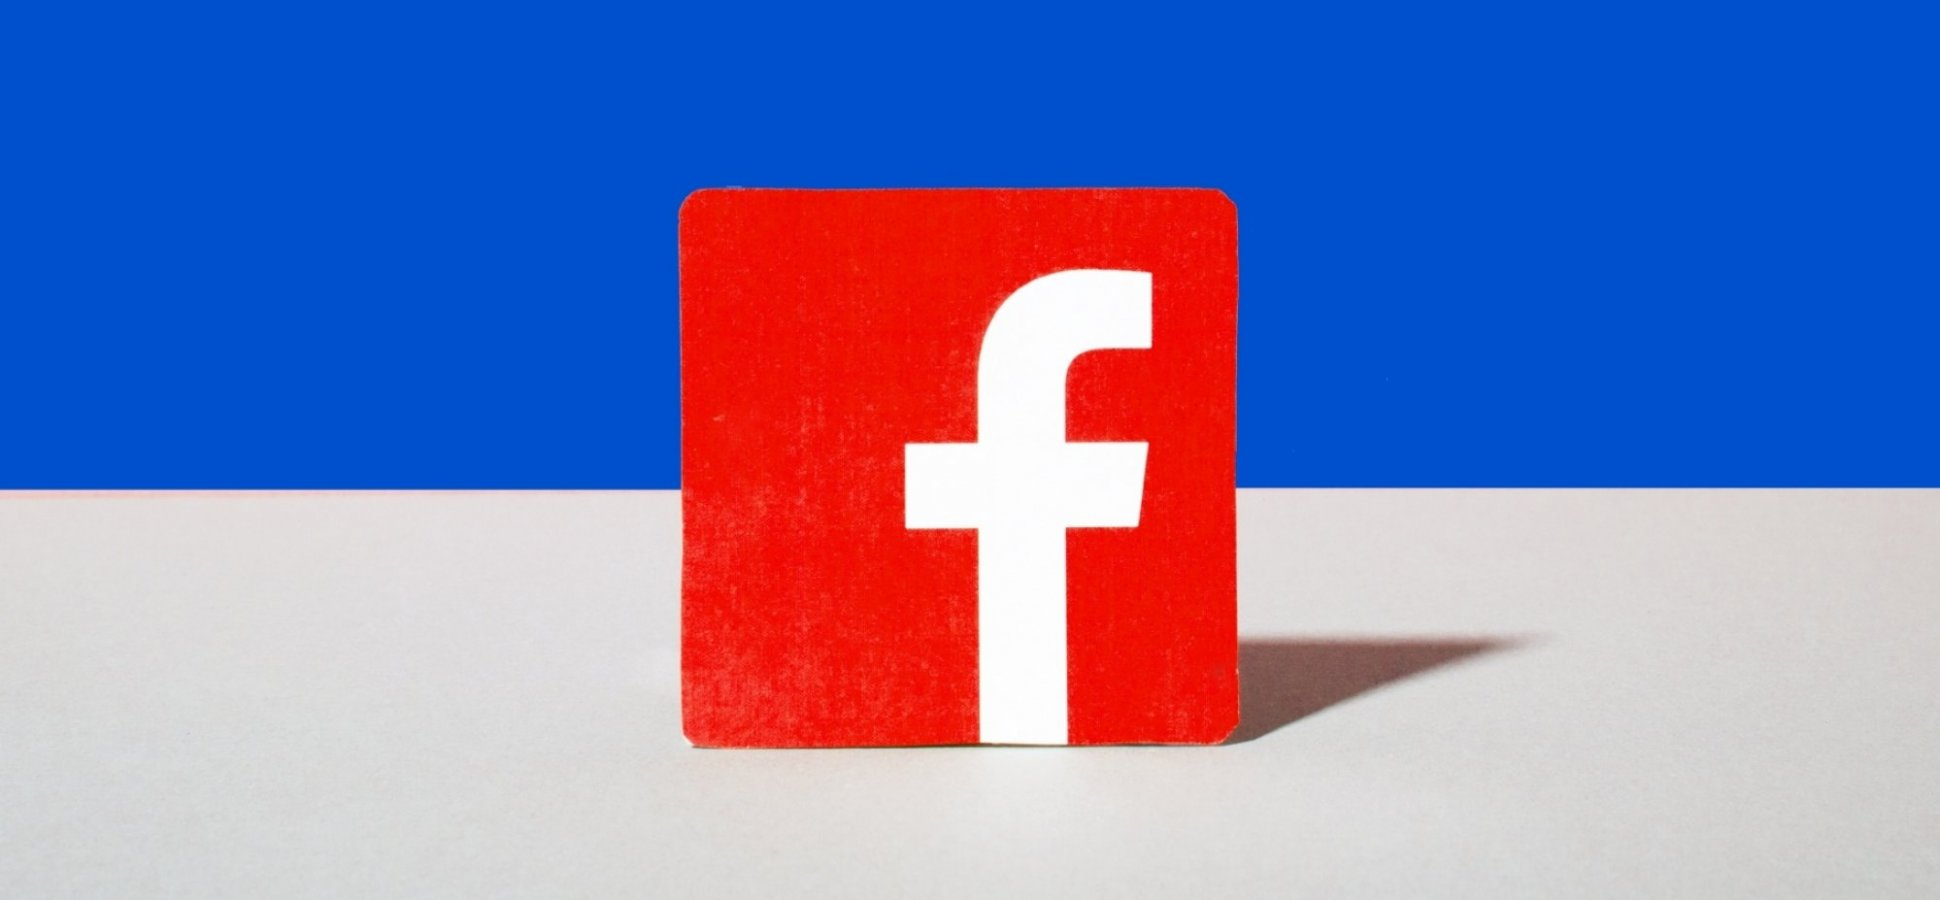 Facebook Is Looking Like a Victim of the Innovator's Dilemma